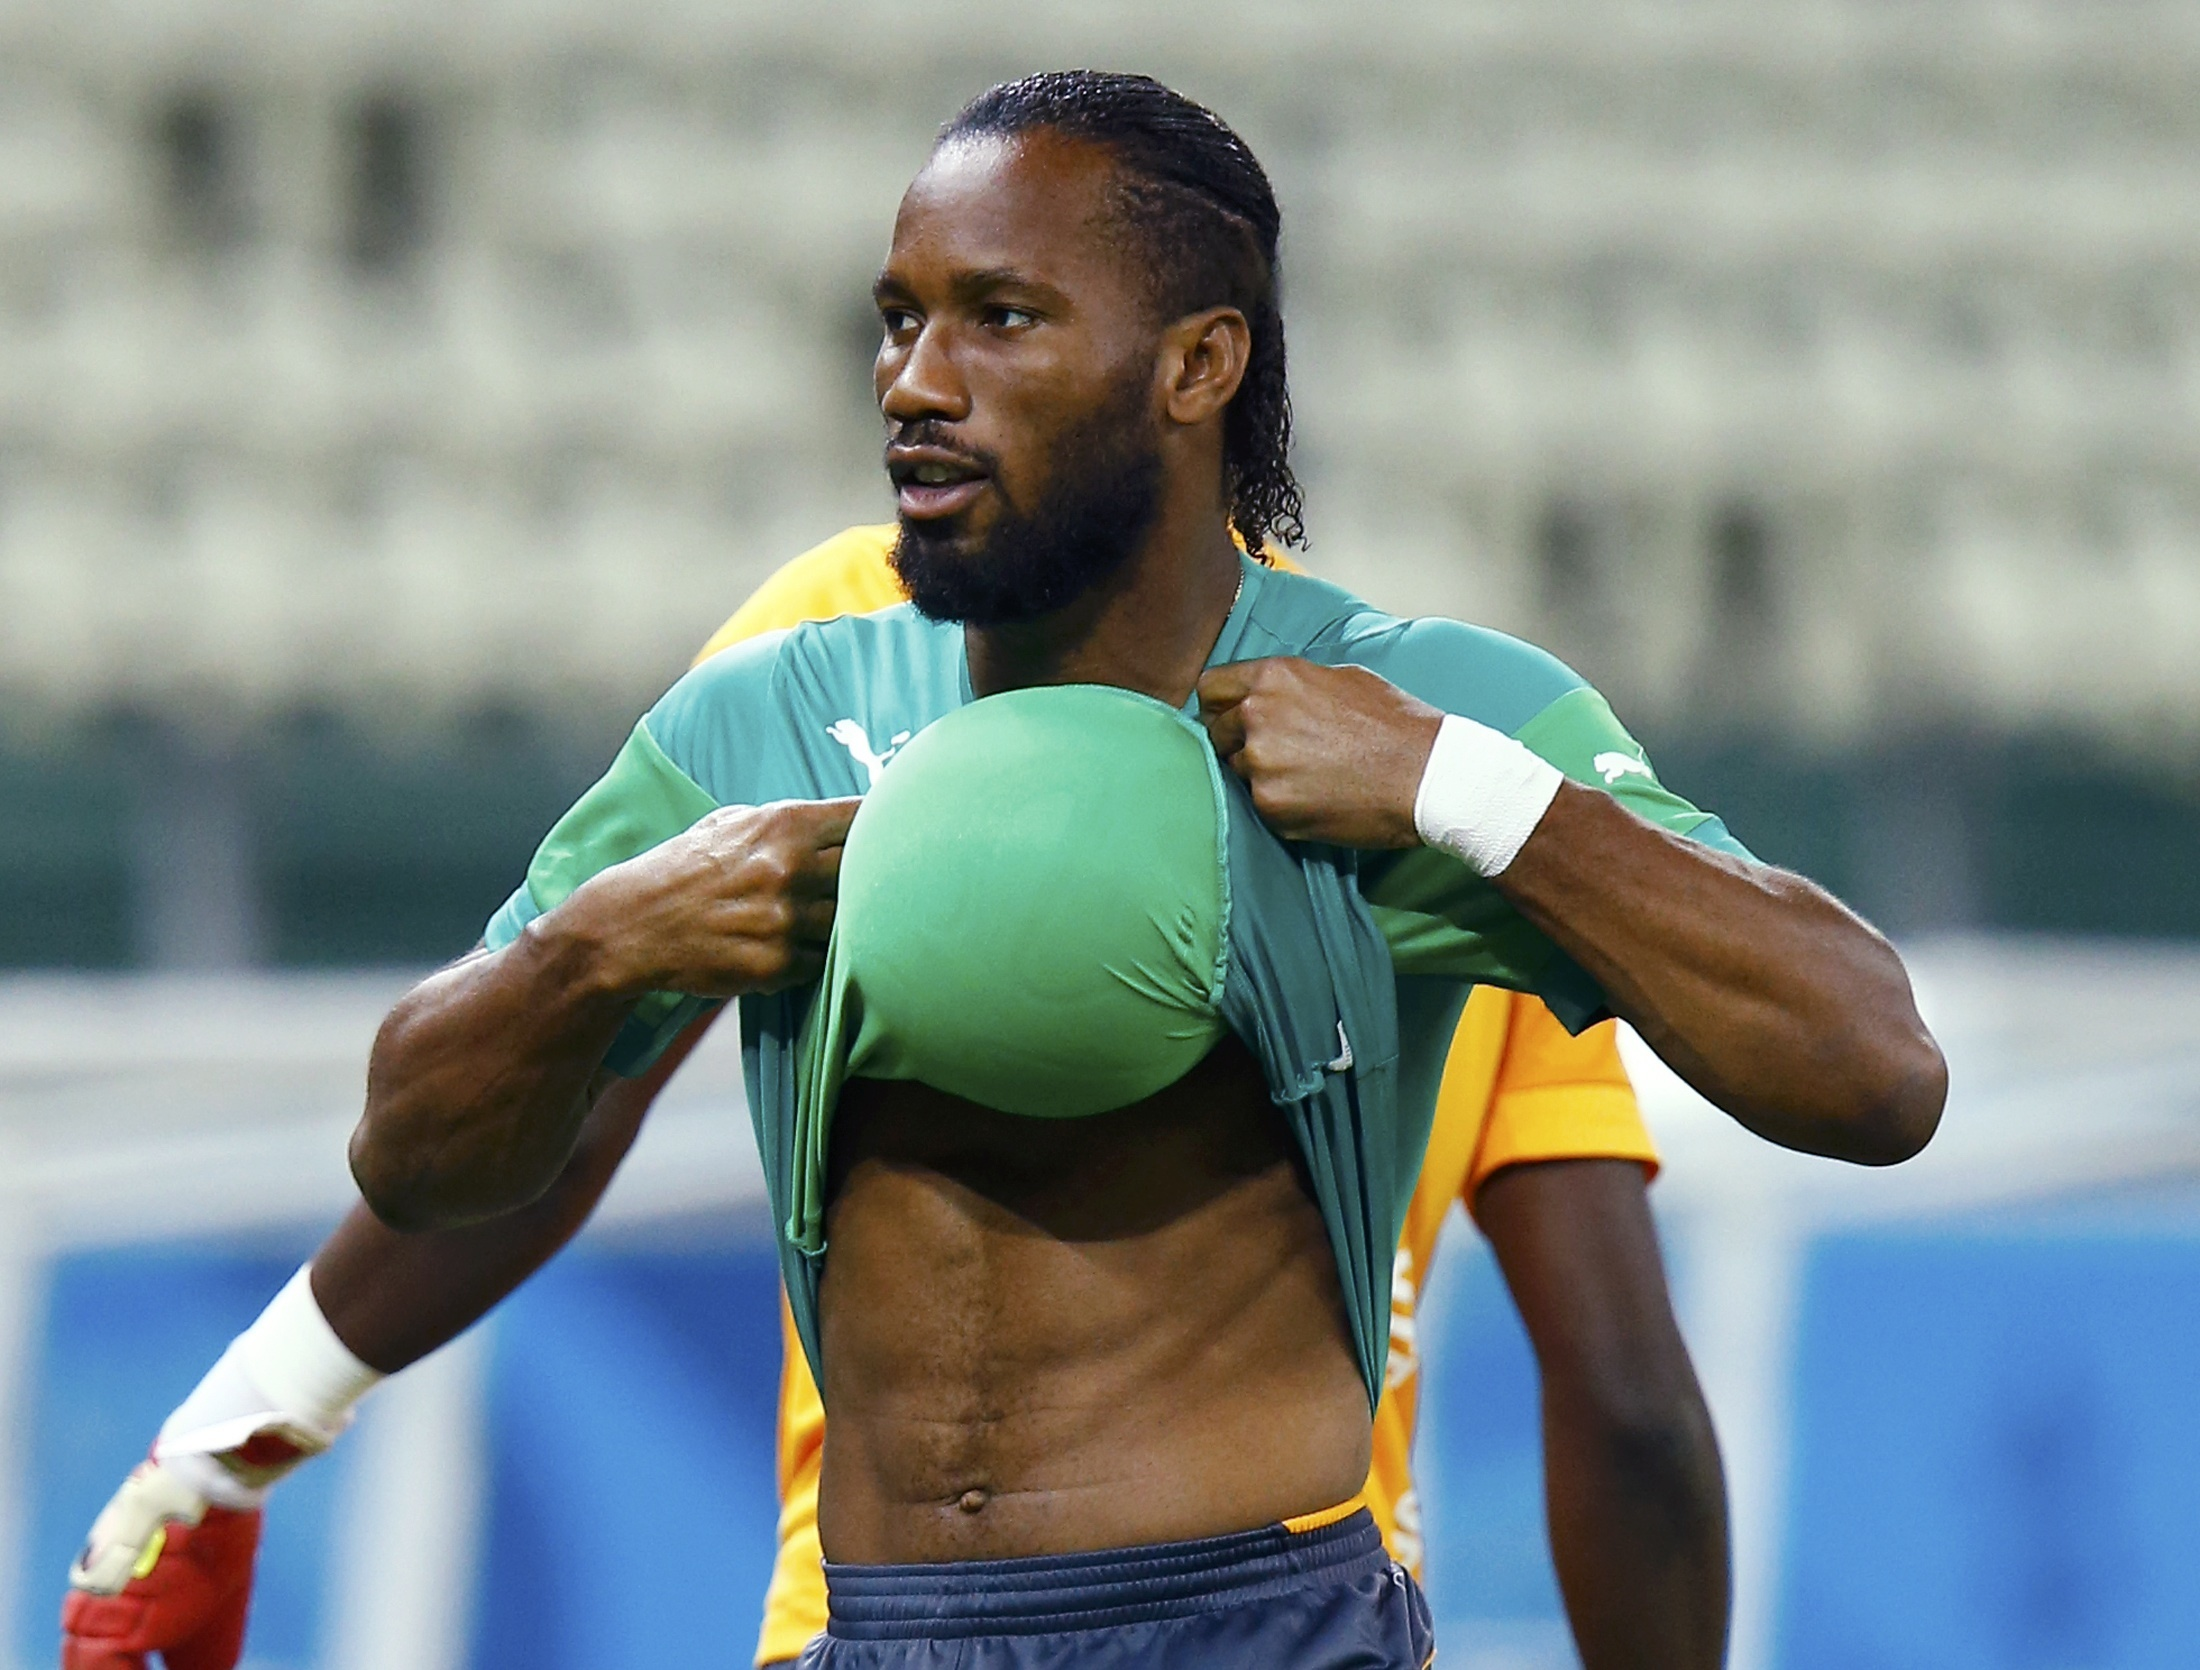 Ivory Coast national team forward Didier Drogba hides a ball under his shirt during practice at Castelo Stadium in Fortaleza June 23, 2014.   REUTERS/Mike Blake (BRAZIL  - Tags: SPORT WORLD CUP SOCCER)